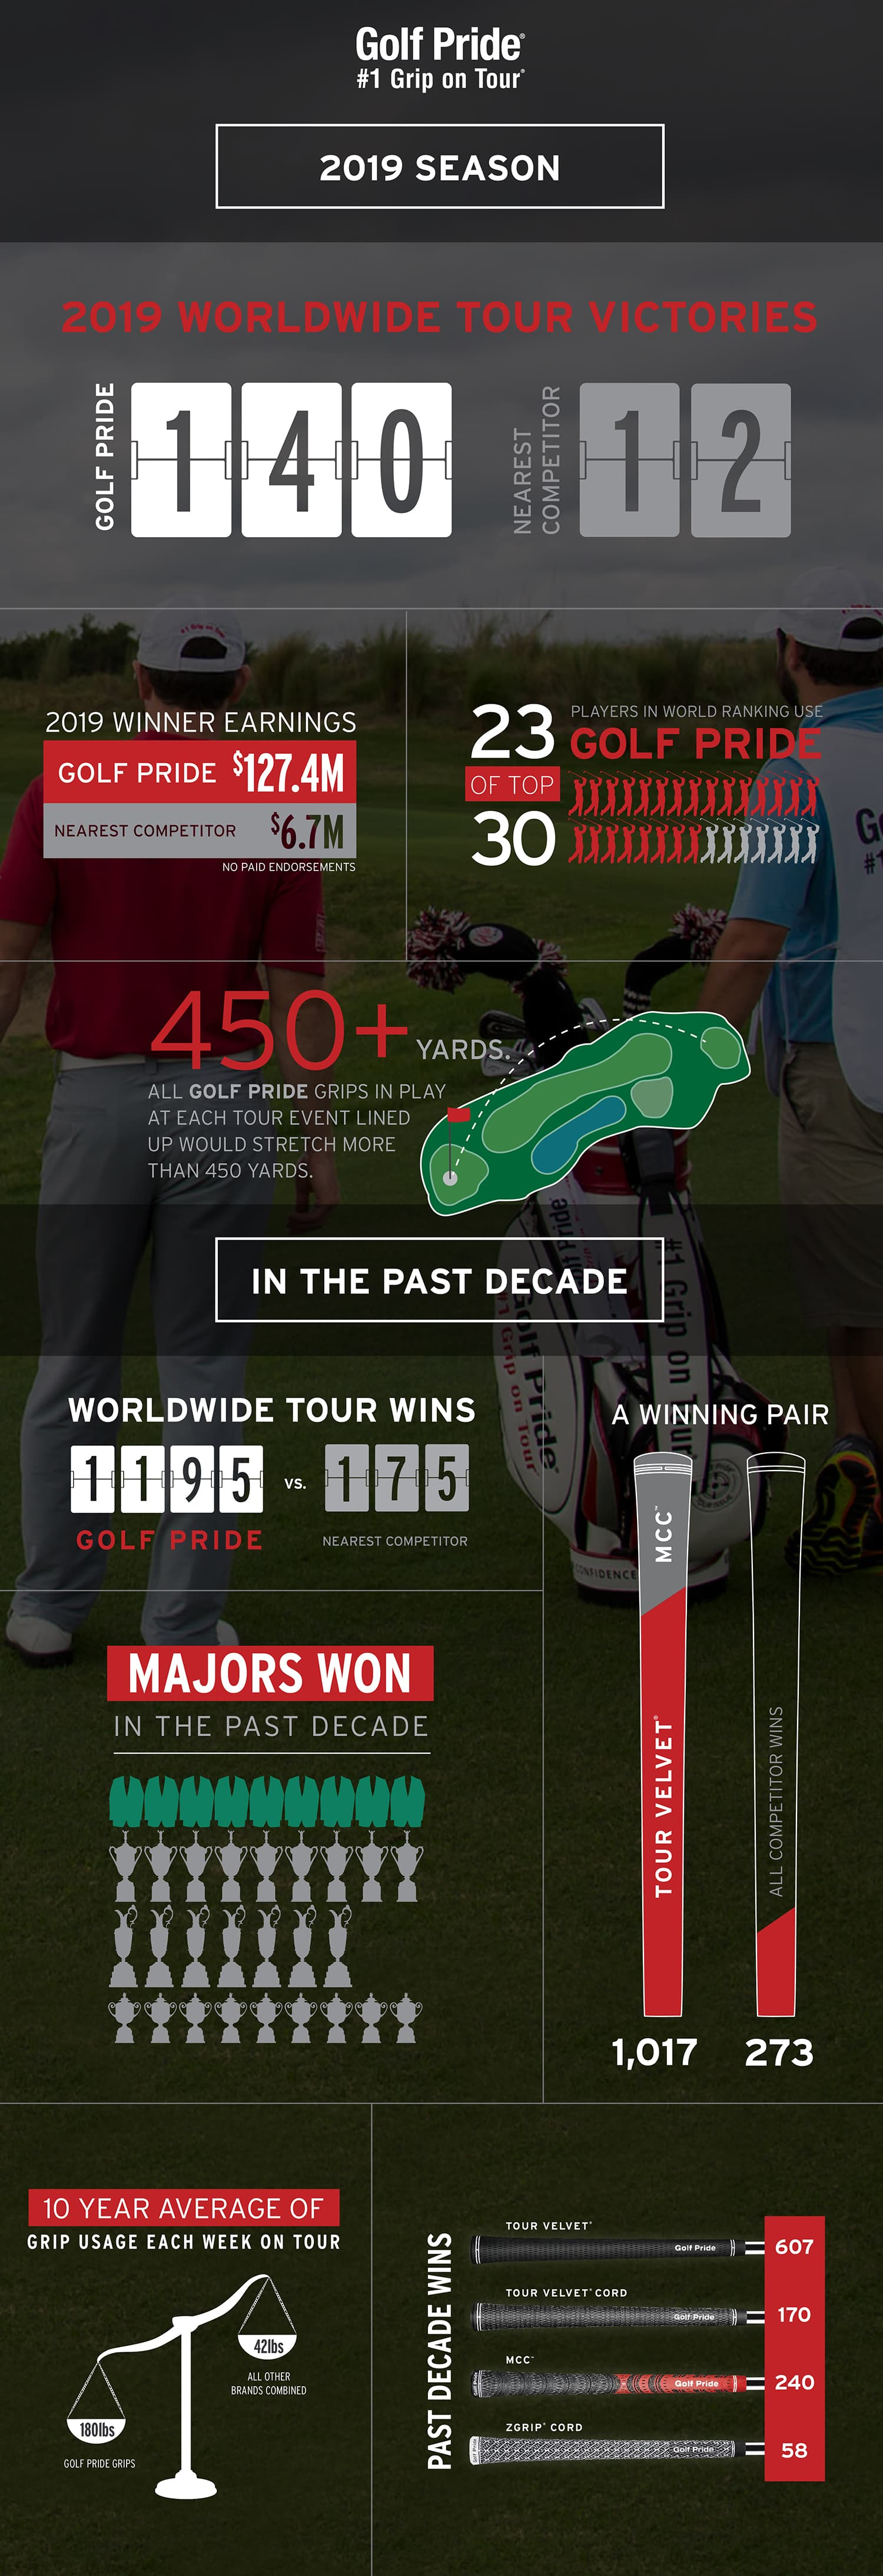 Golf Pride Tour Stats